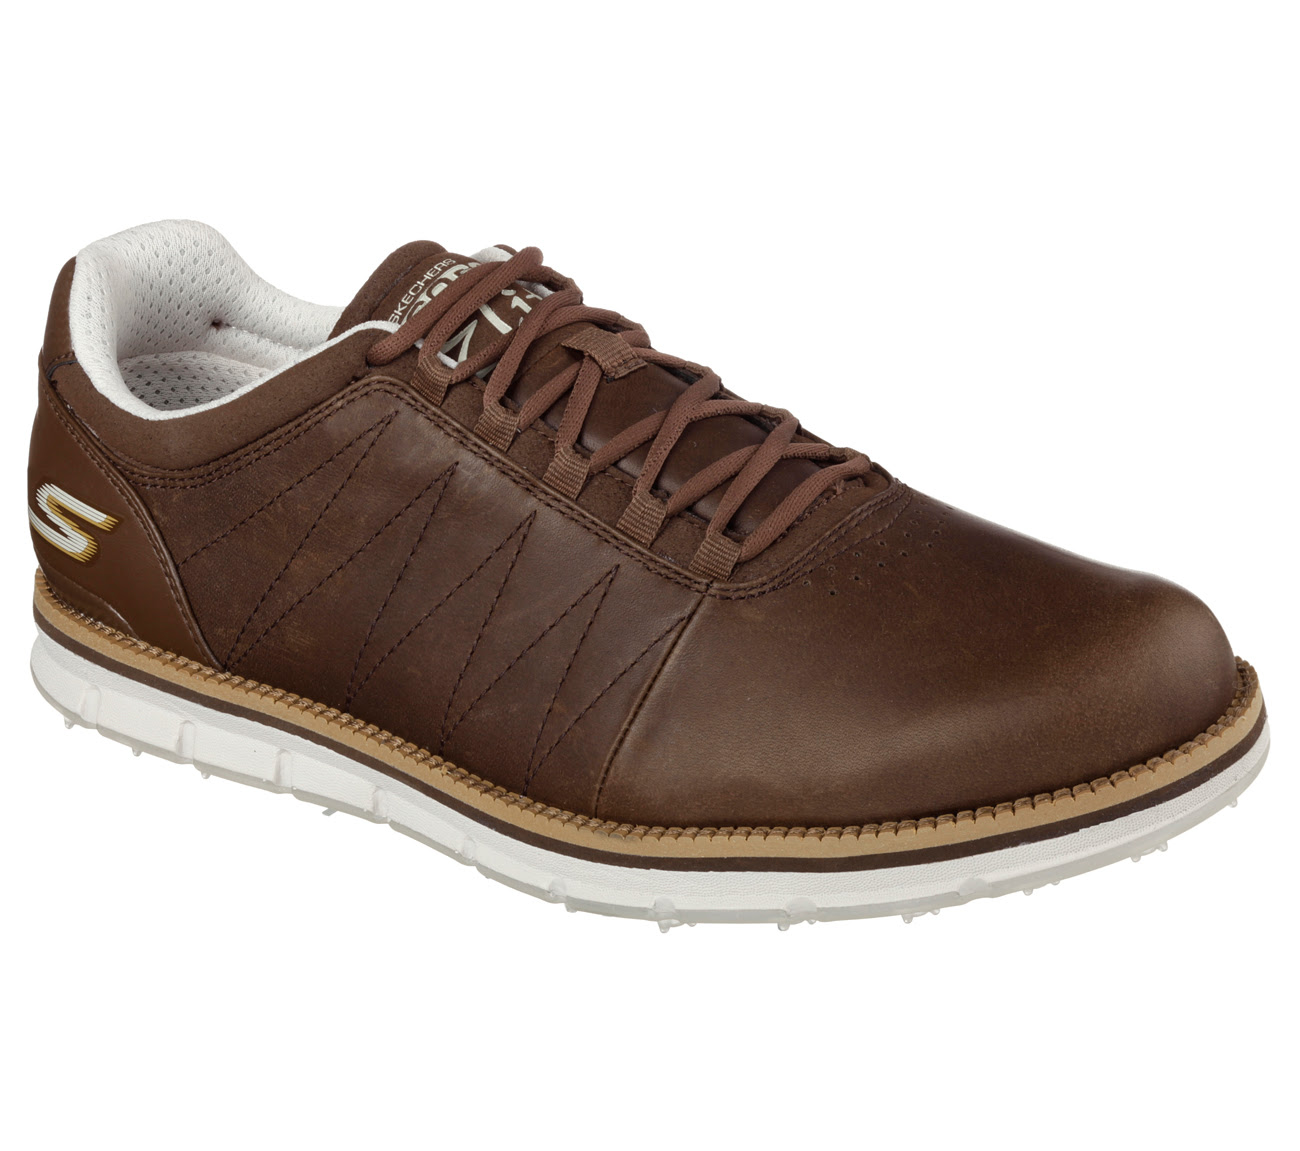 Review of Skechers GO GOLF Elite Spikeless Golf Shoes